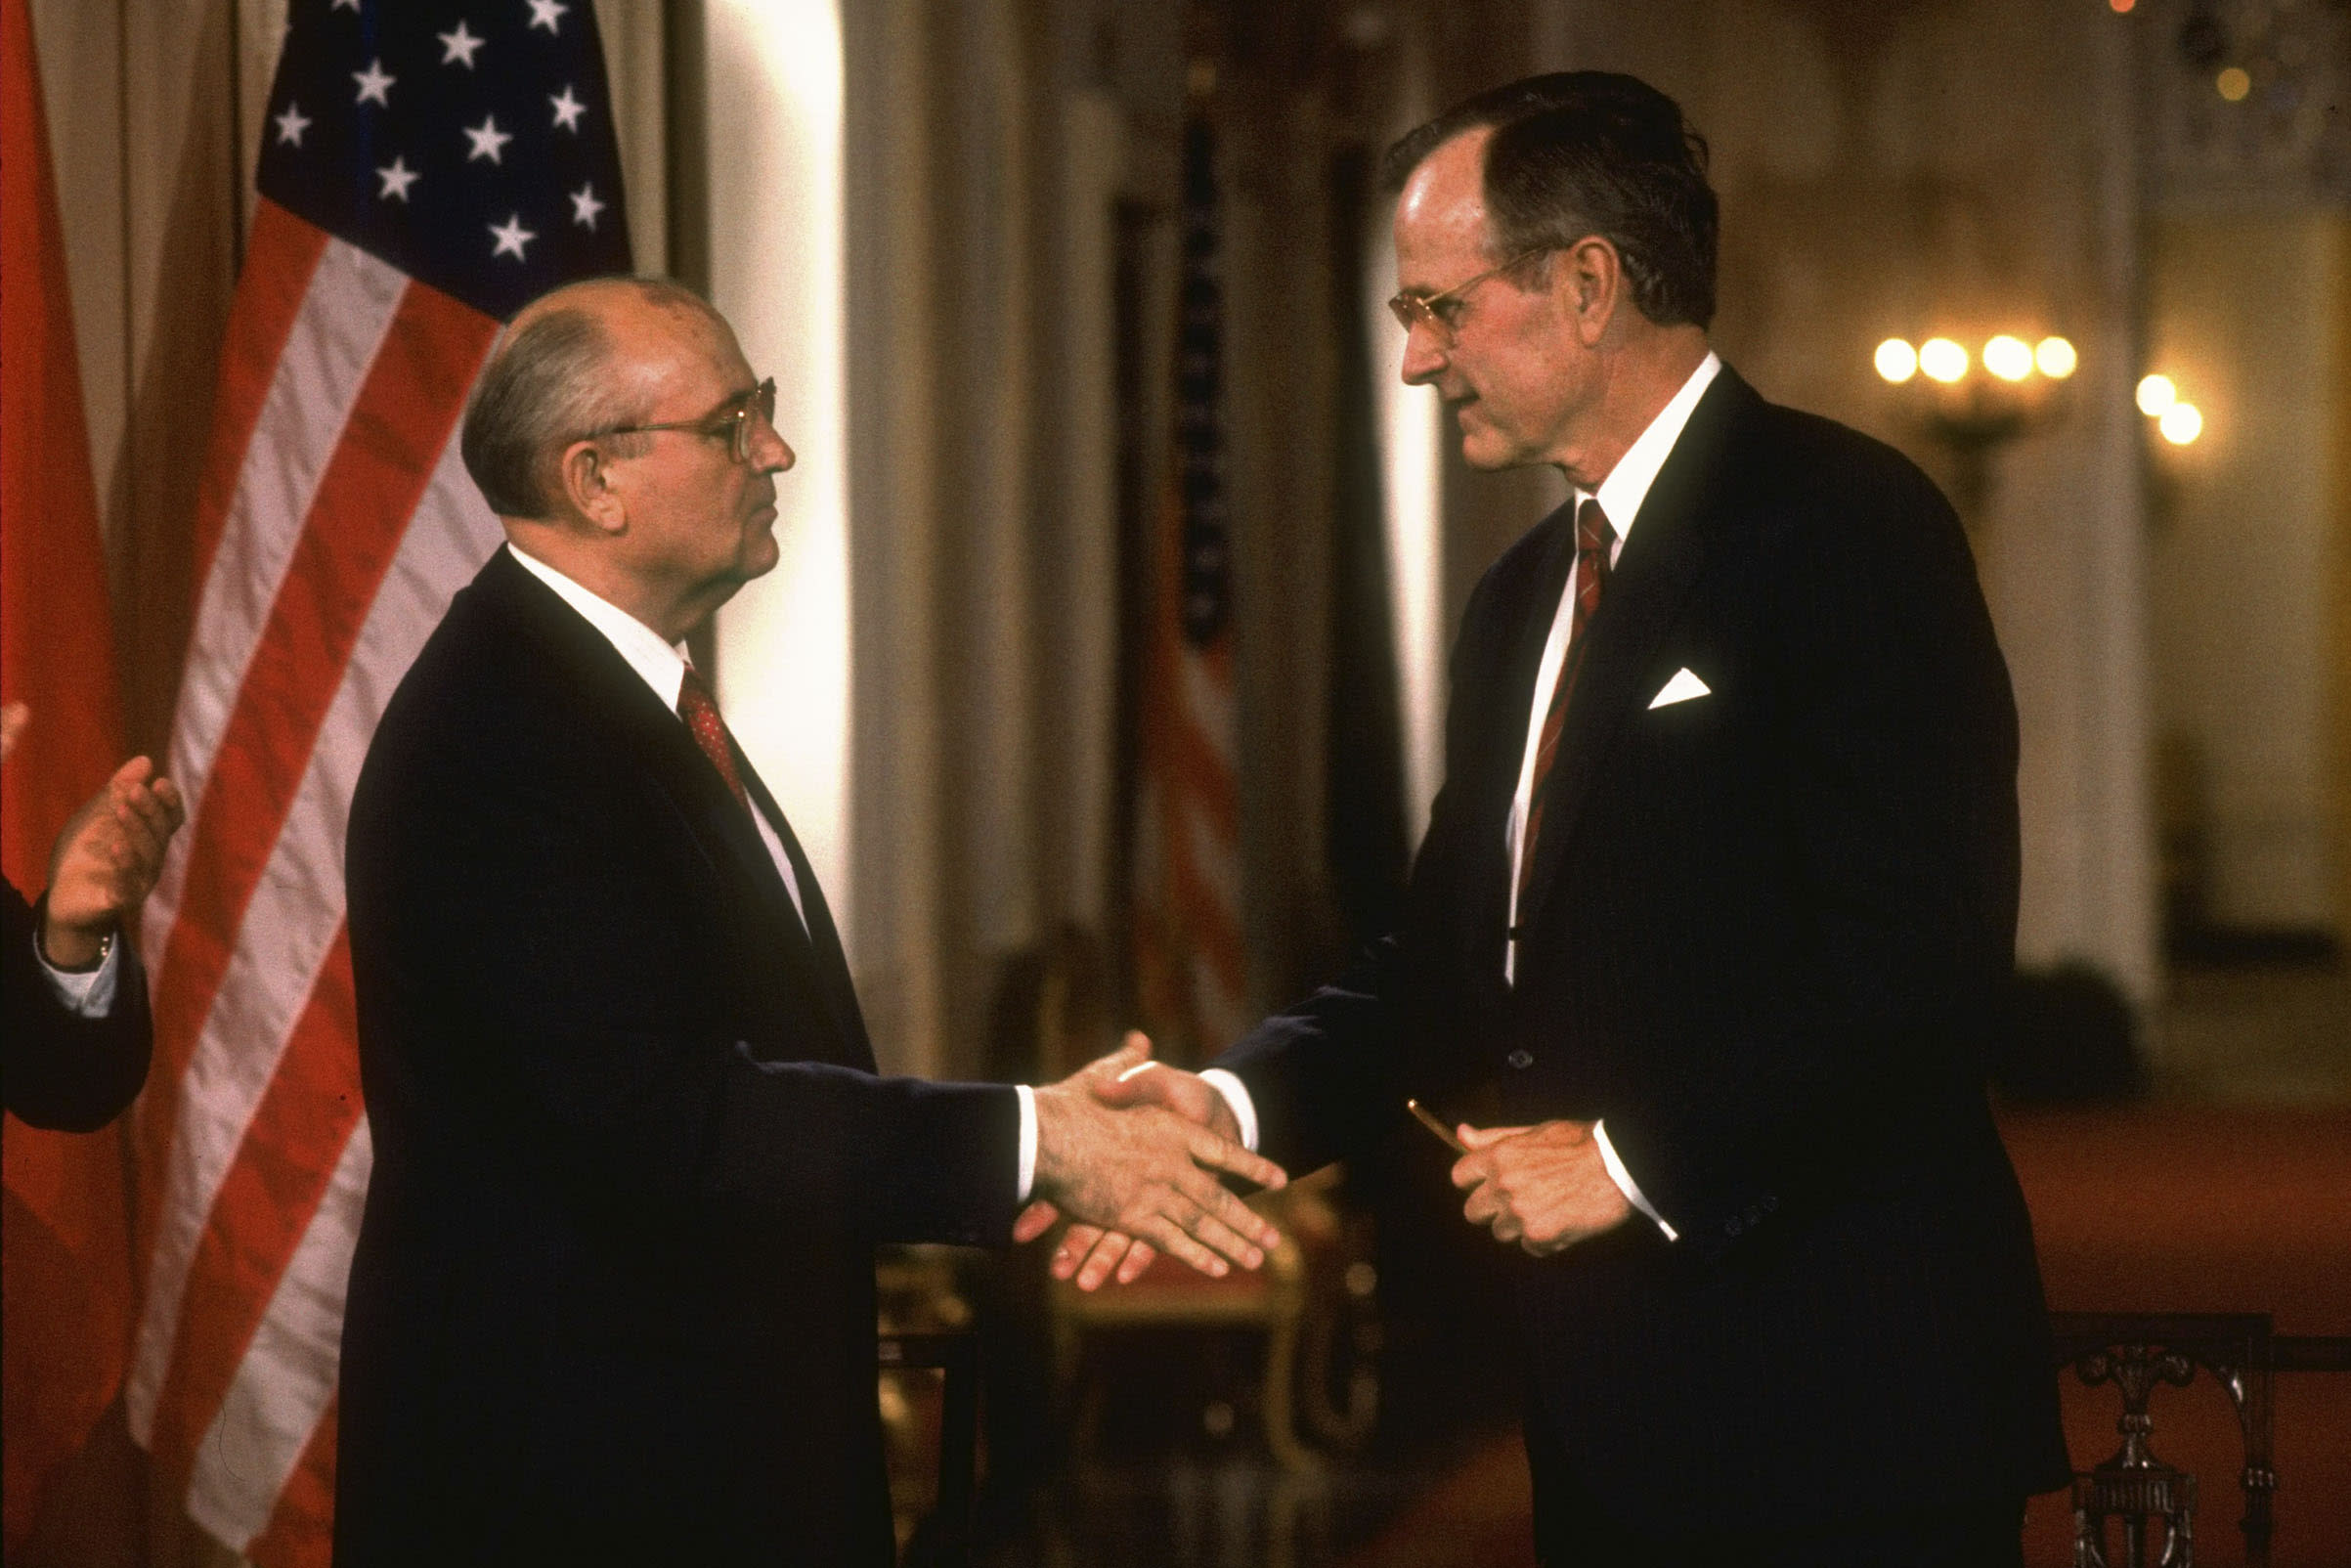 Mikhail Gorbachev: George H.W. Bush and I Ended a War Together. But Peace Is Now in Jeopardy